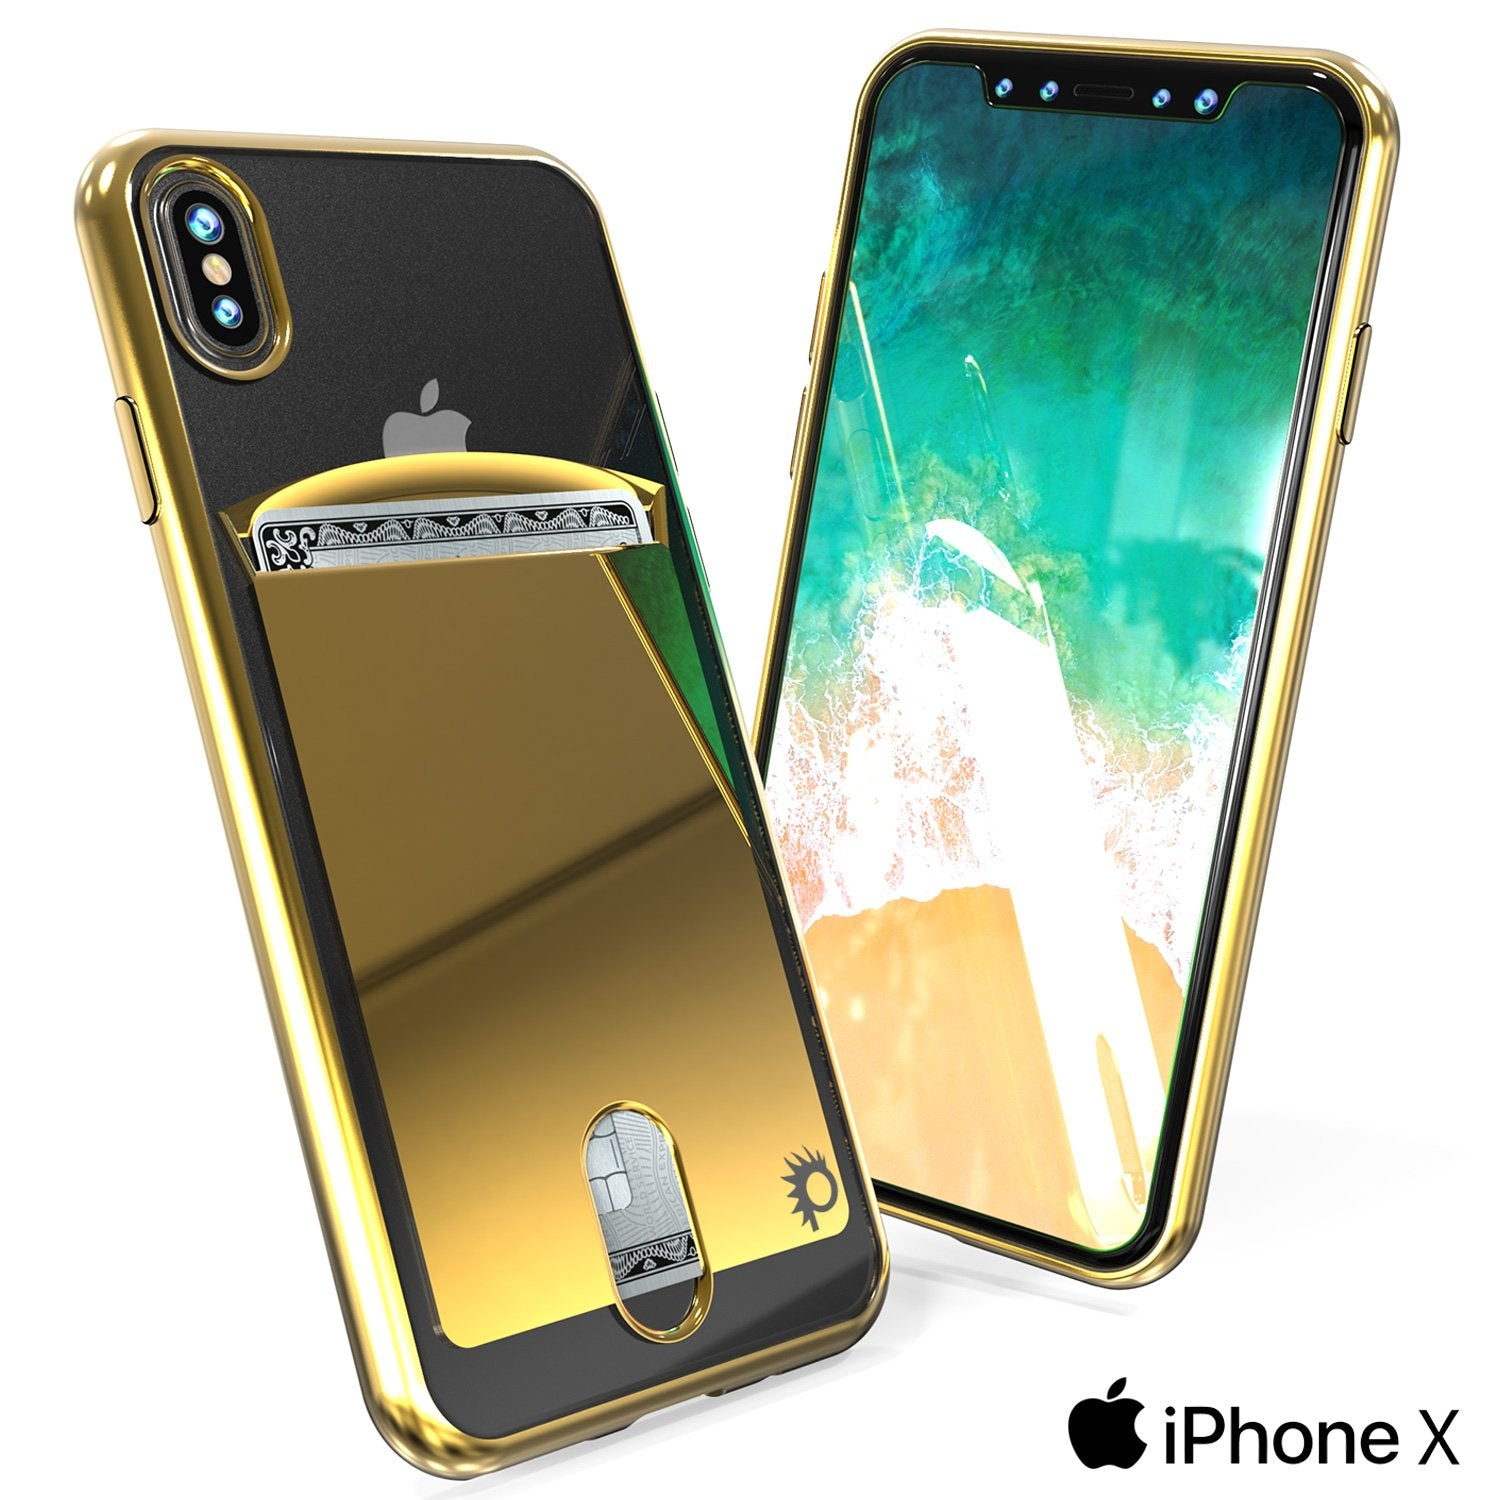 iPhone X Case, PUNKcase [LUCID Series] Slim Fit Protective Dual Layer Armor Cover [Gold] - PunkCase NZ